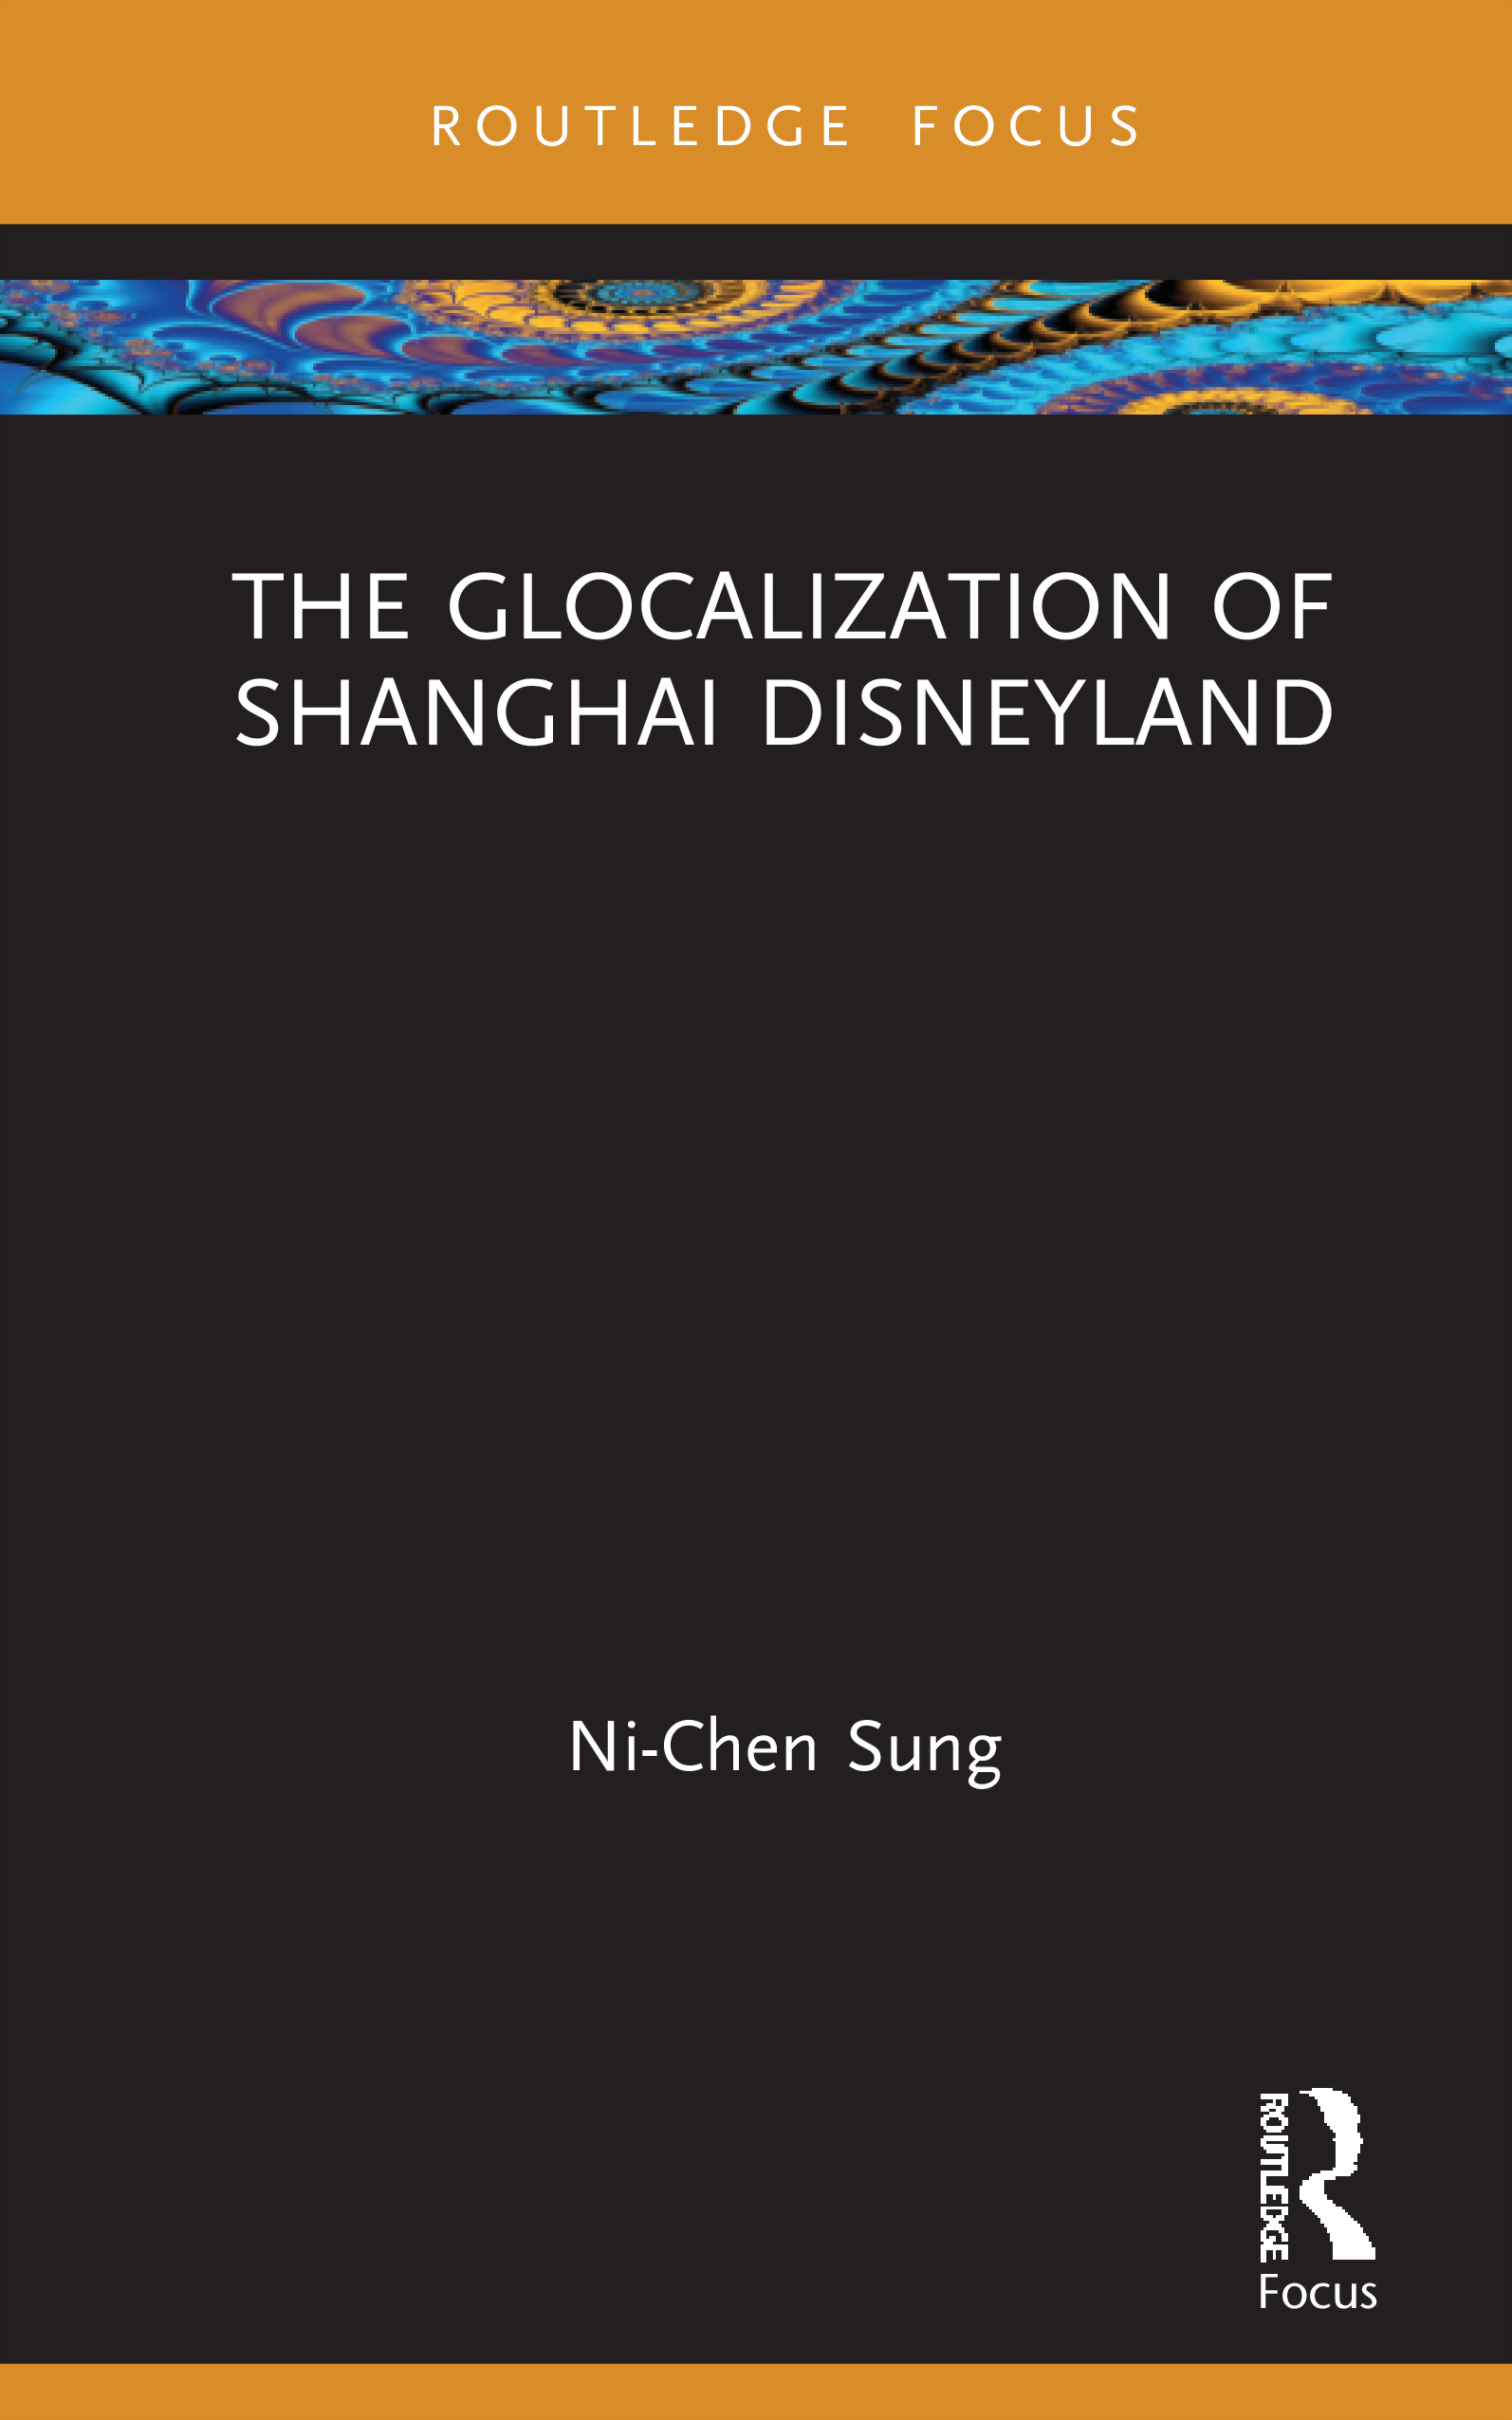 Implications of the differences of Shanghai Disneyland